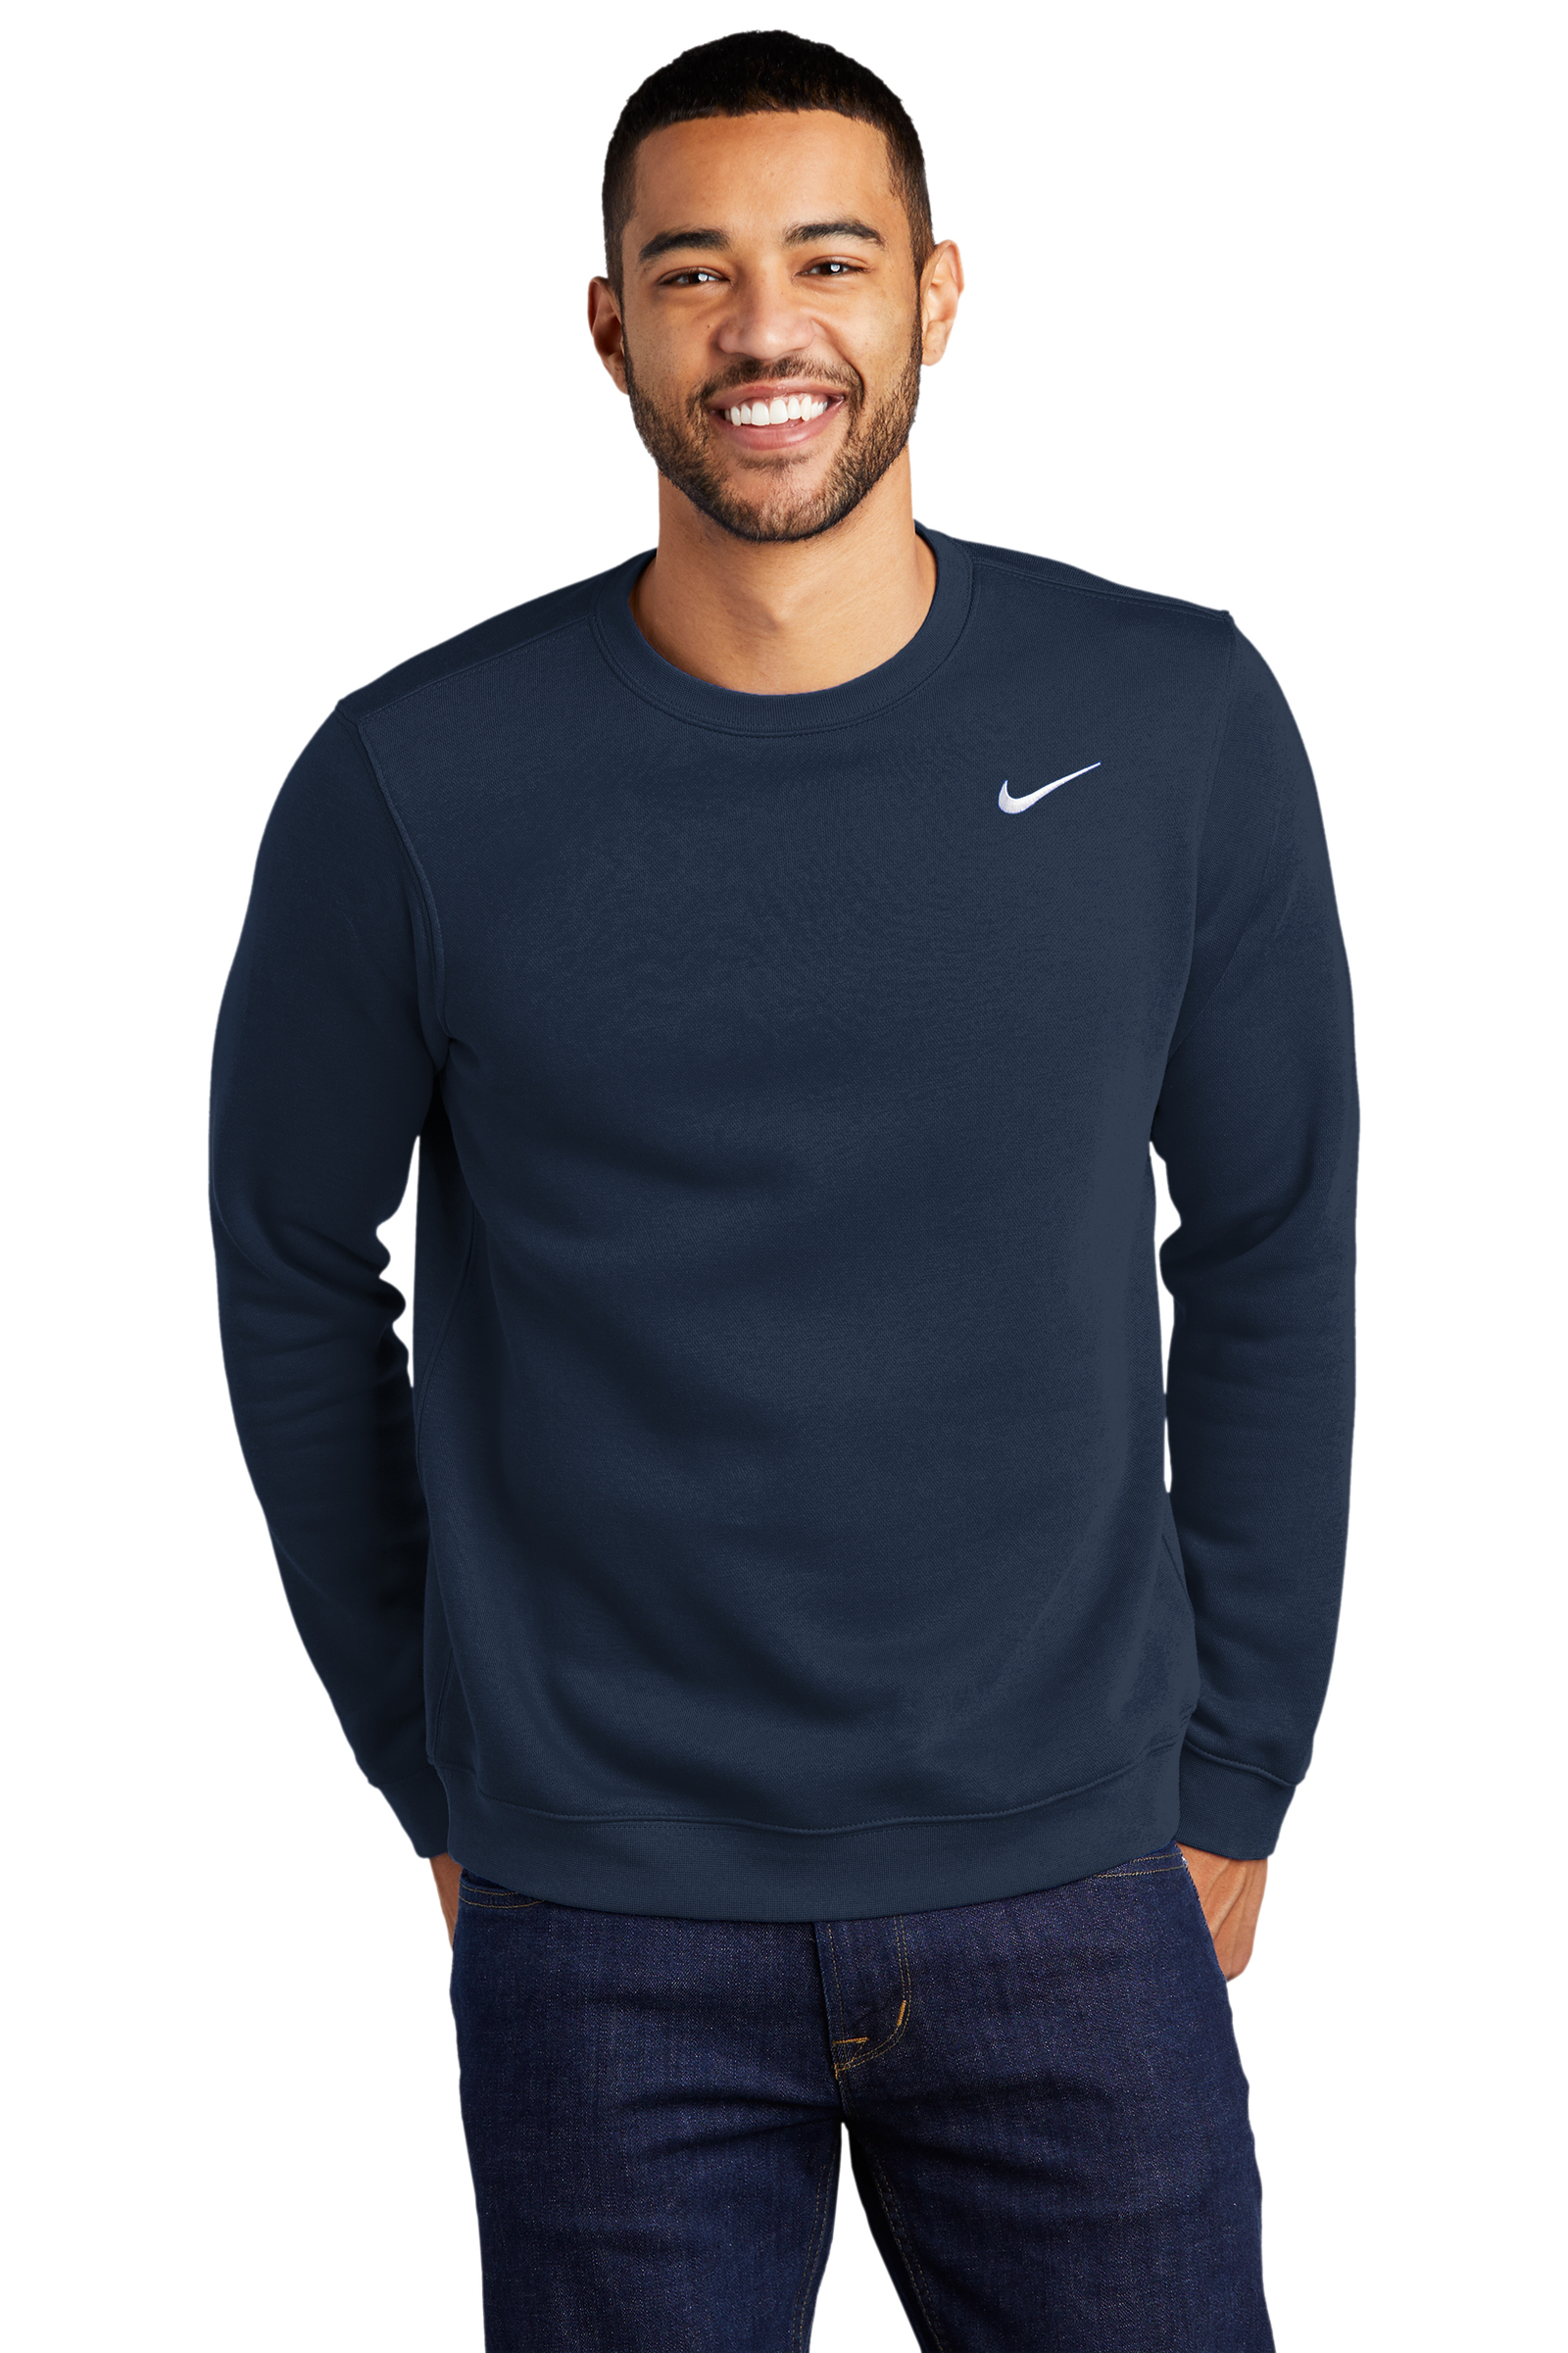 Nike Embroidered Men's Club Fleece Crew